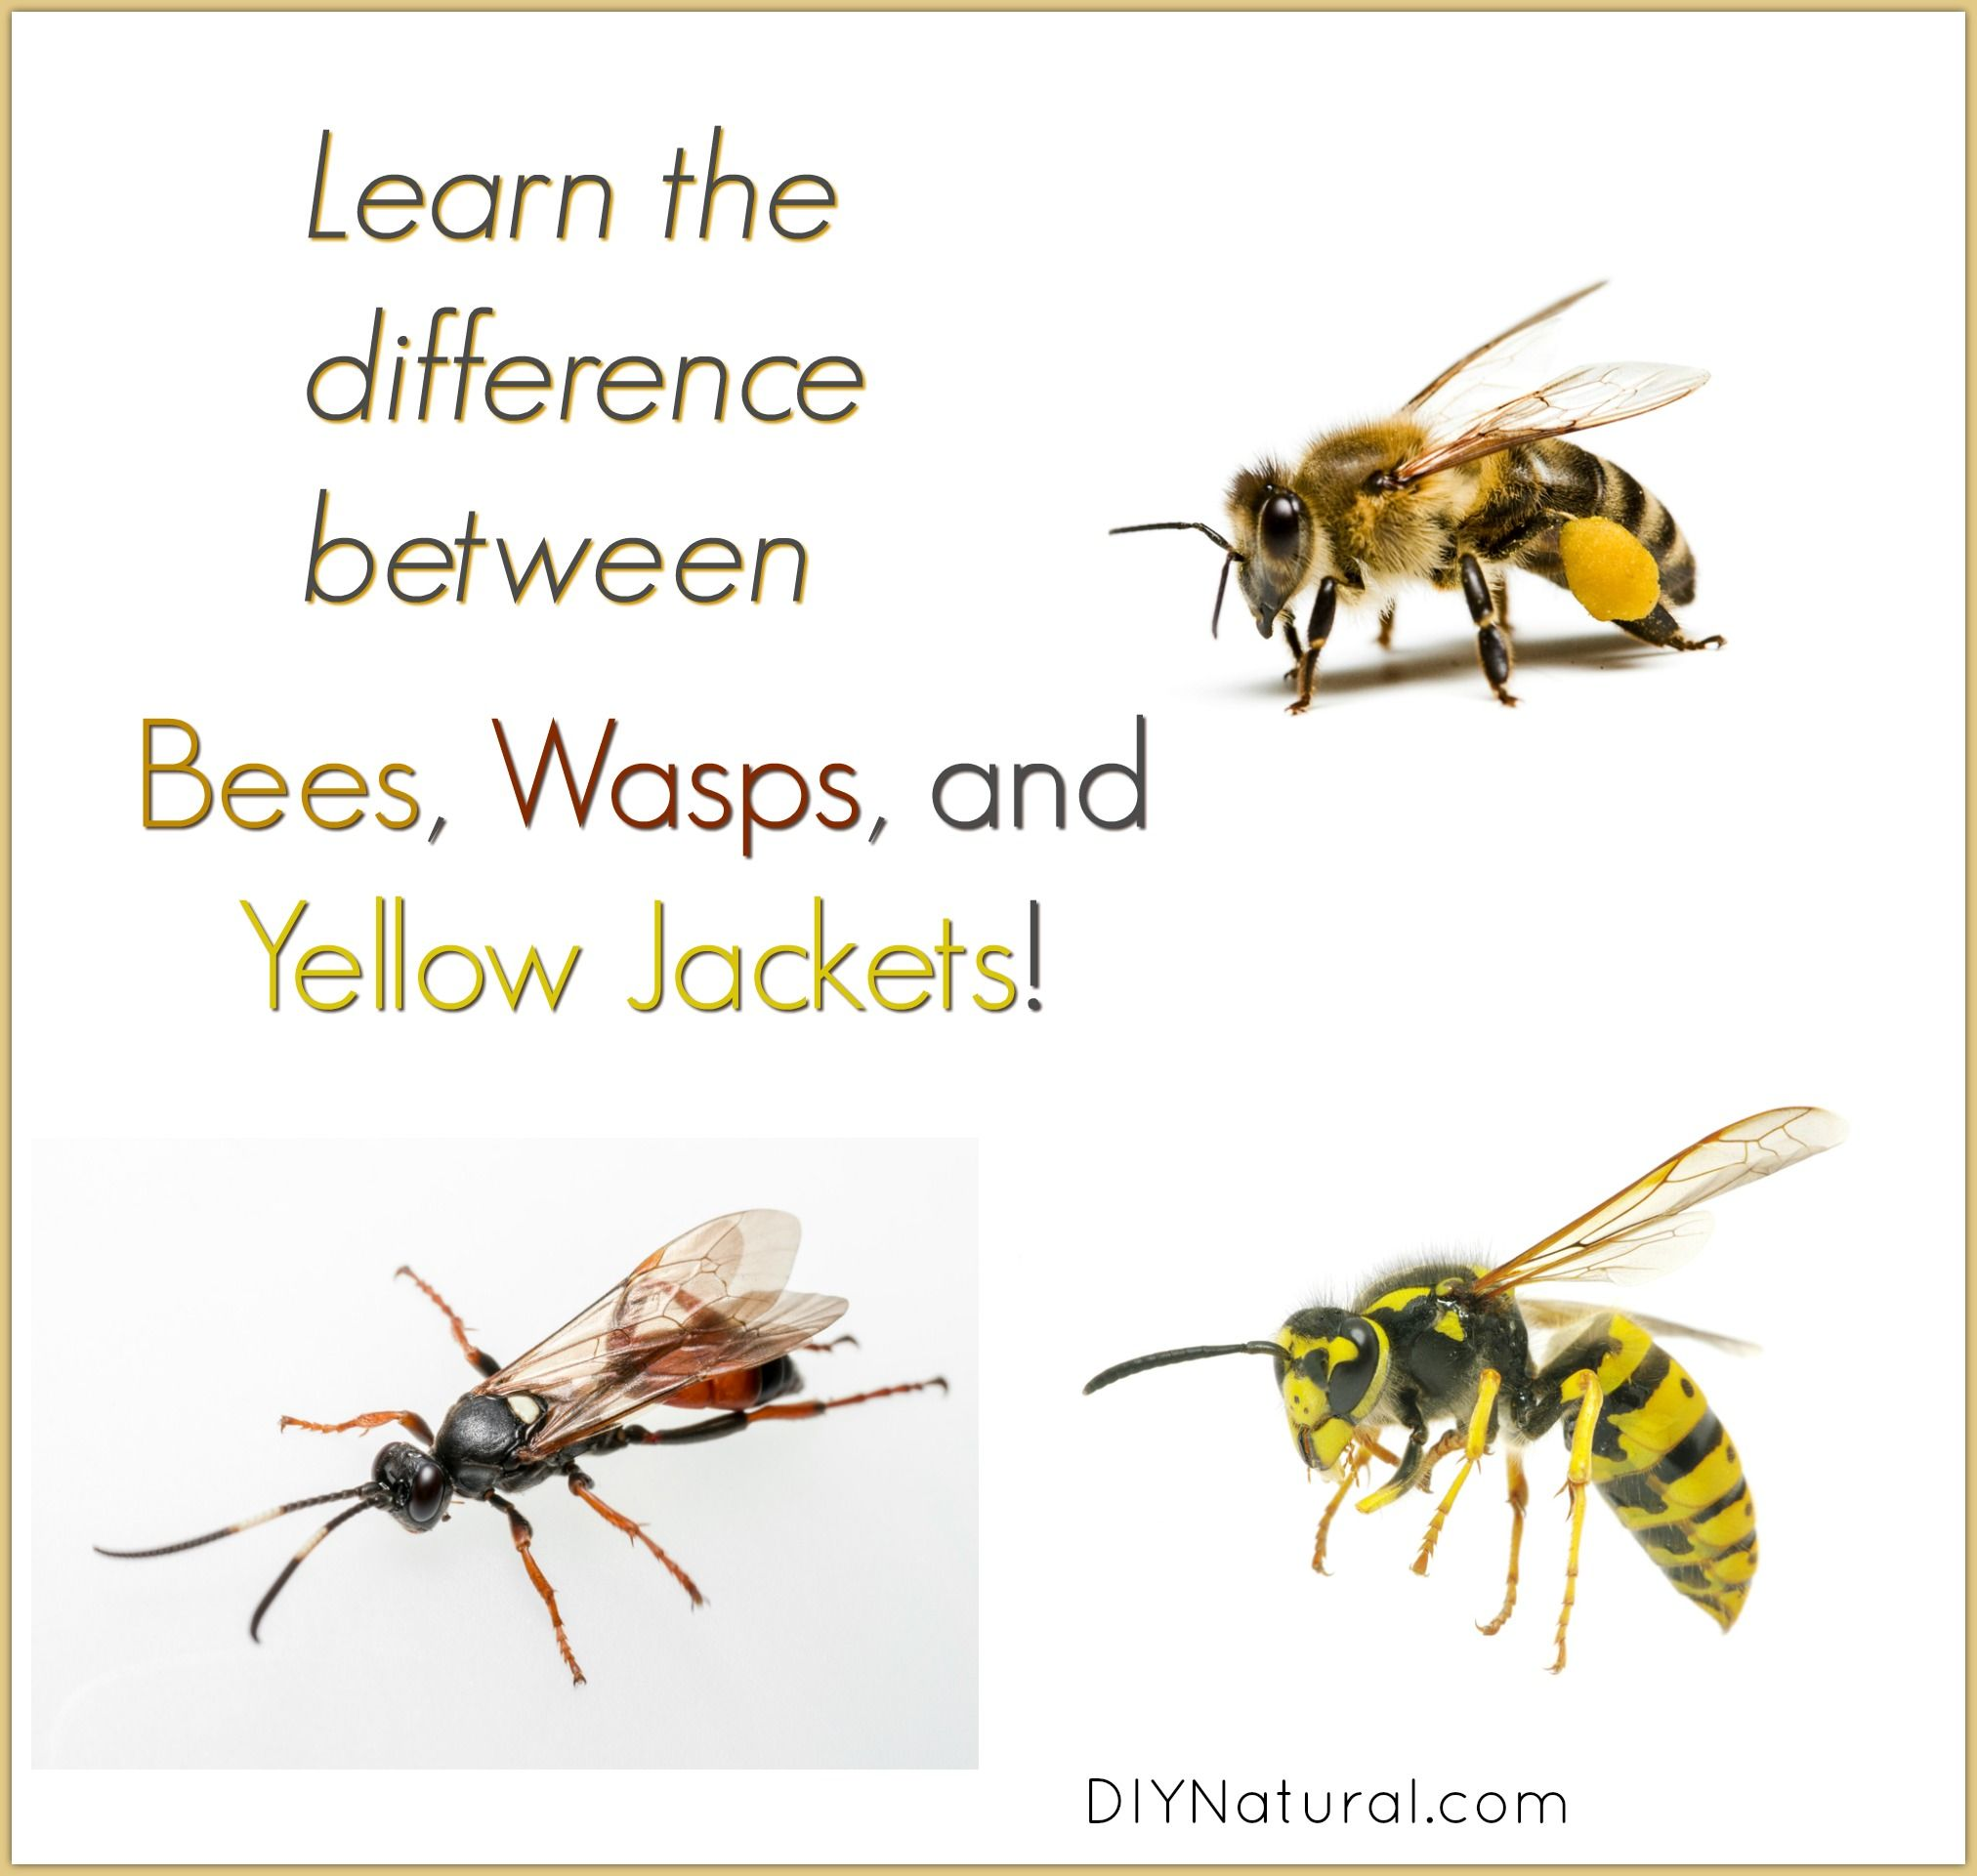 1a81f40457b9e98ed3a9f51bd7cff1b2 - How To Get Rid Of Yellow Jackets In House Wall